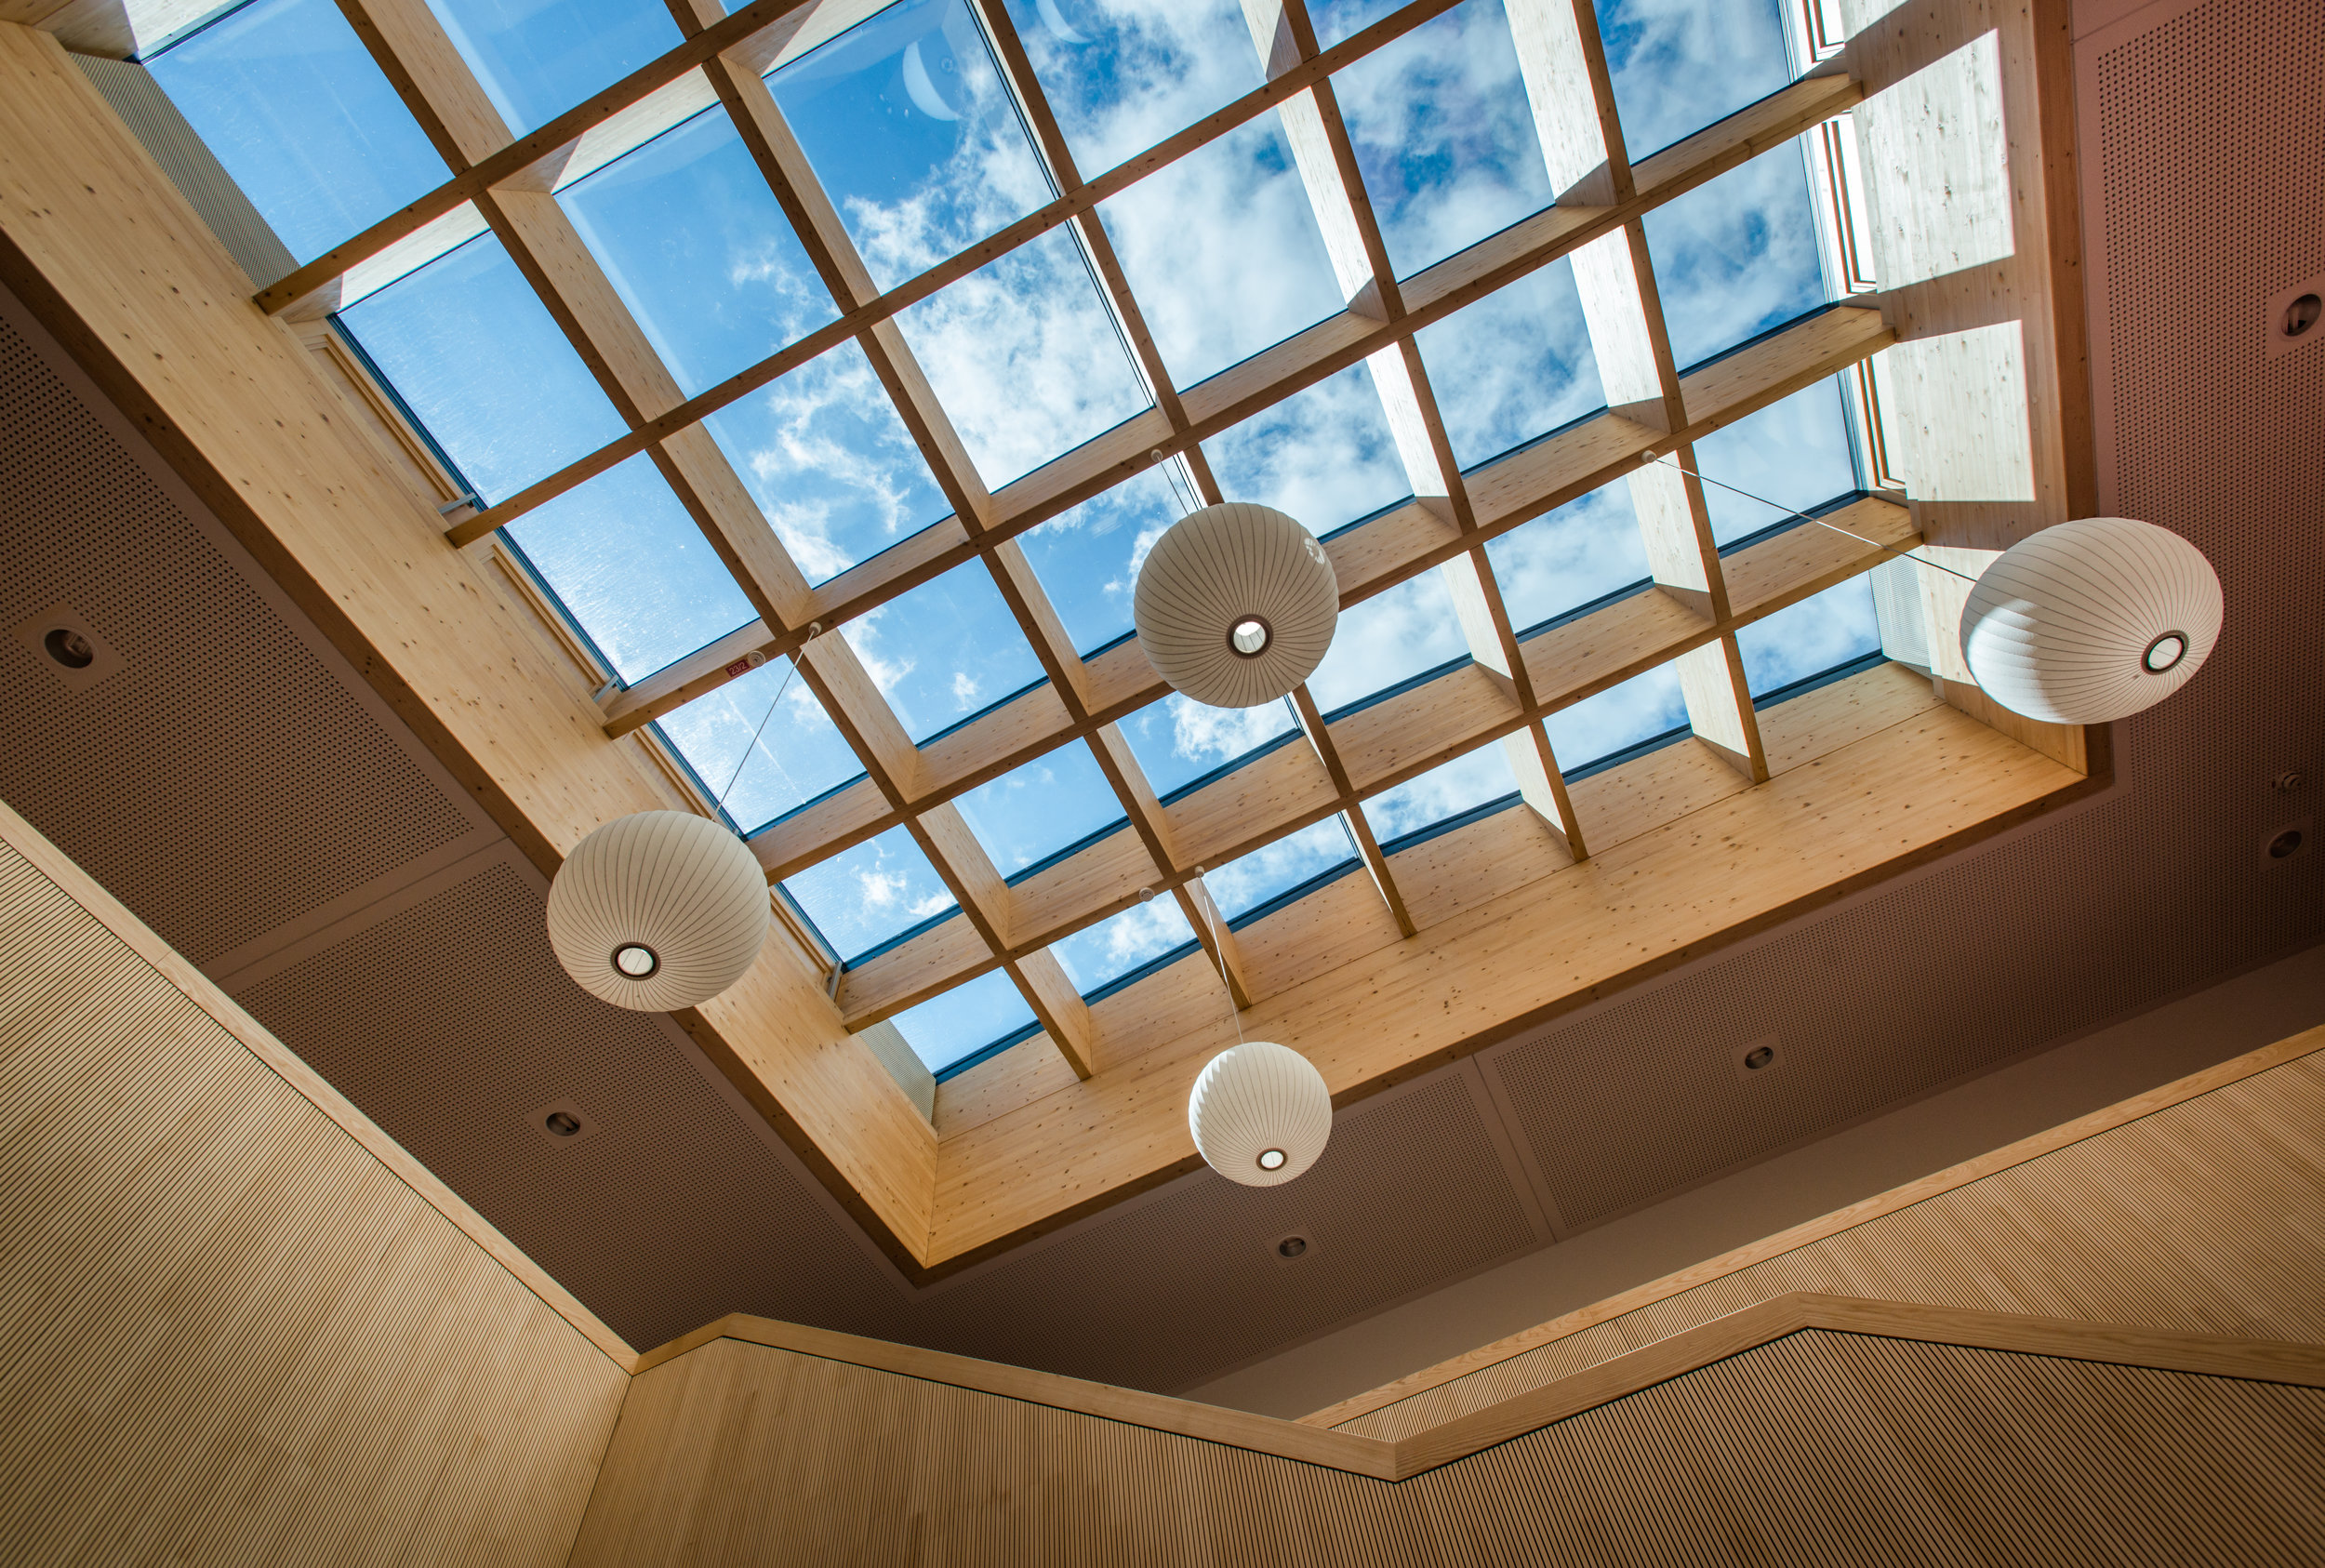 Elementary school library atrium spreads the daylight to make a warm and comfortable learning environment.